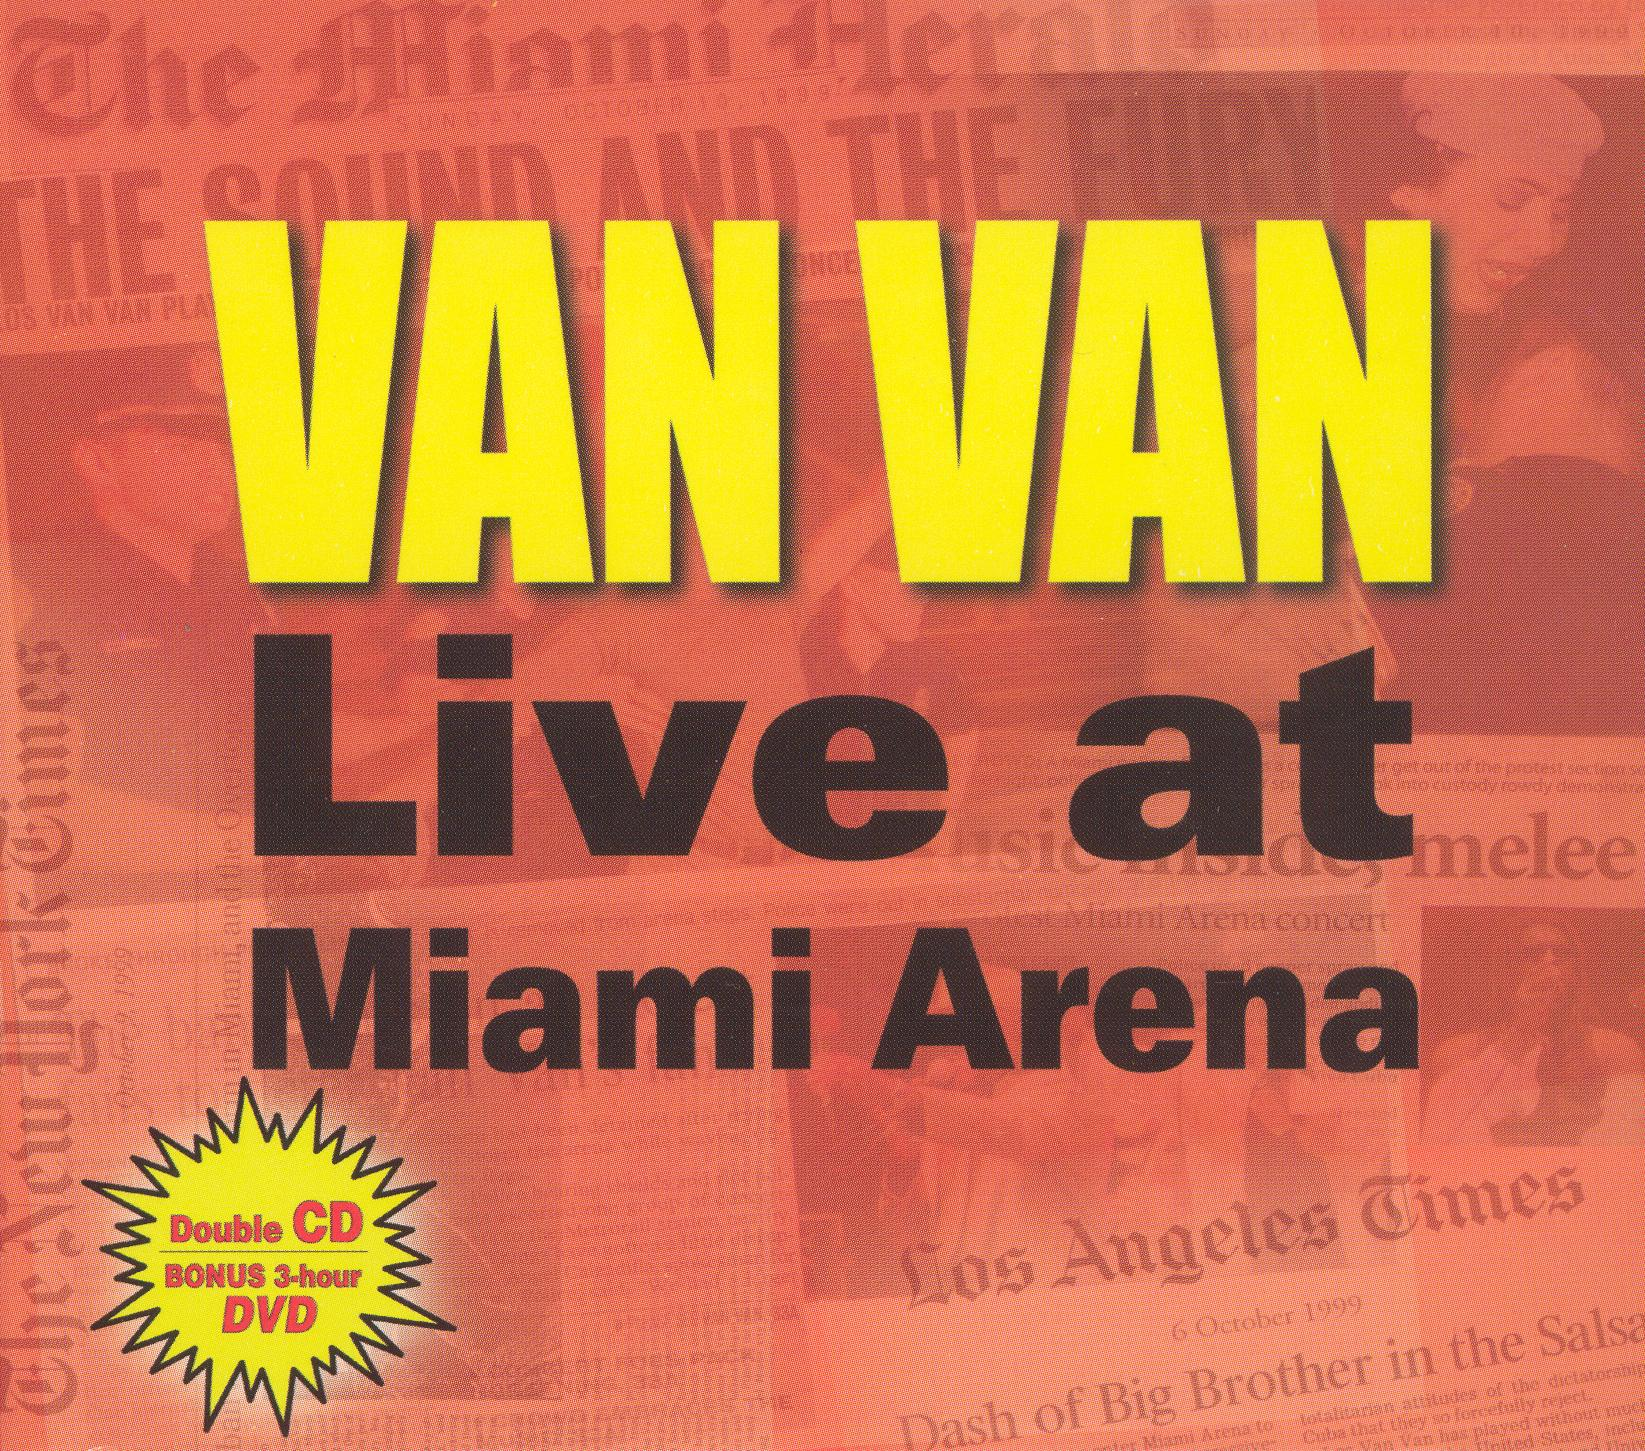 Los Van Van: Live at Miami Arena